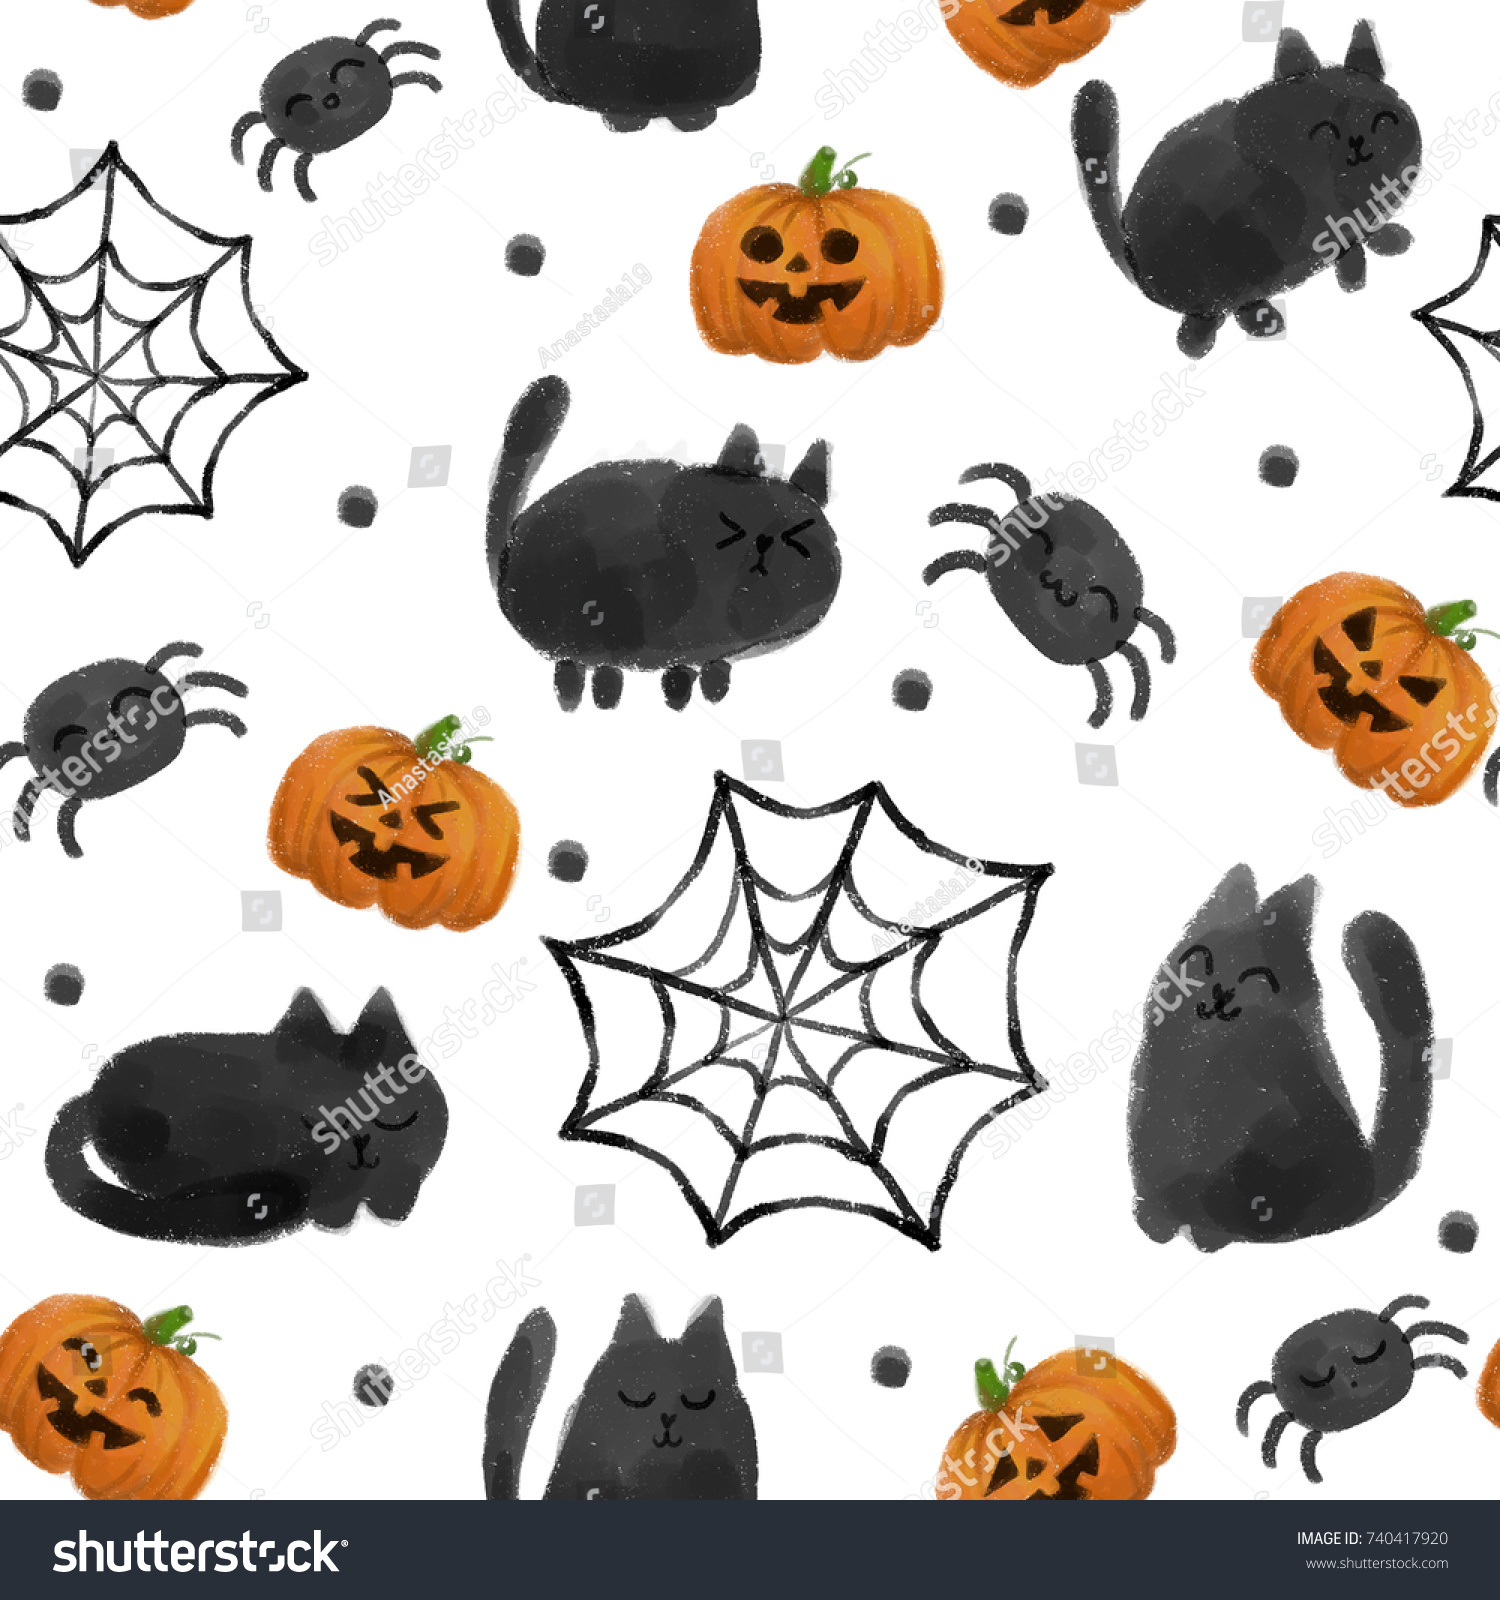 Halloween Pattern Cute Spider Black Cat Stock Illustration 740417920 ...